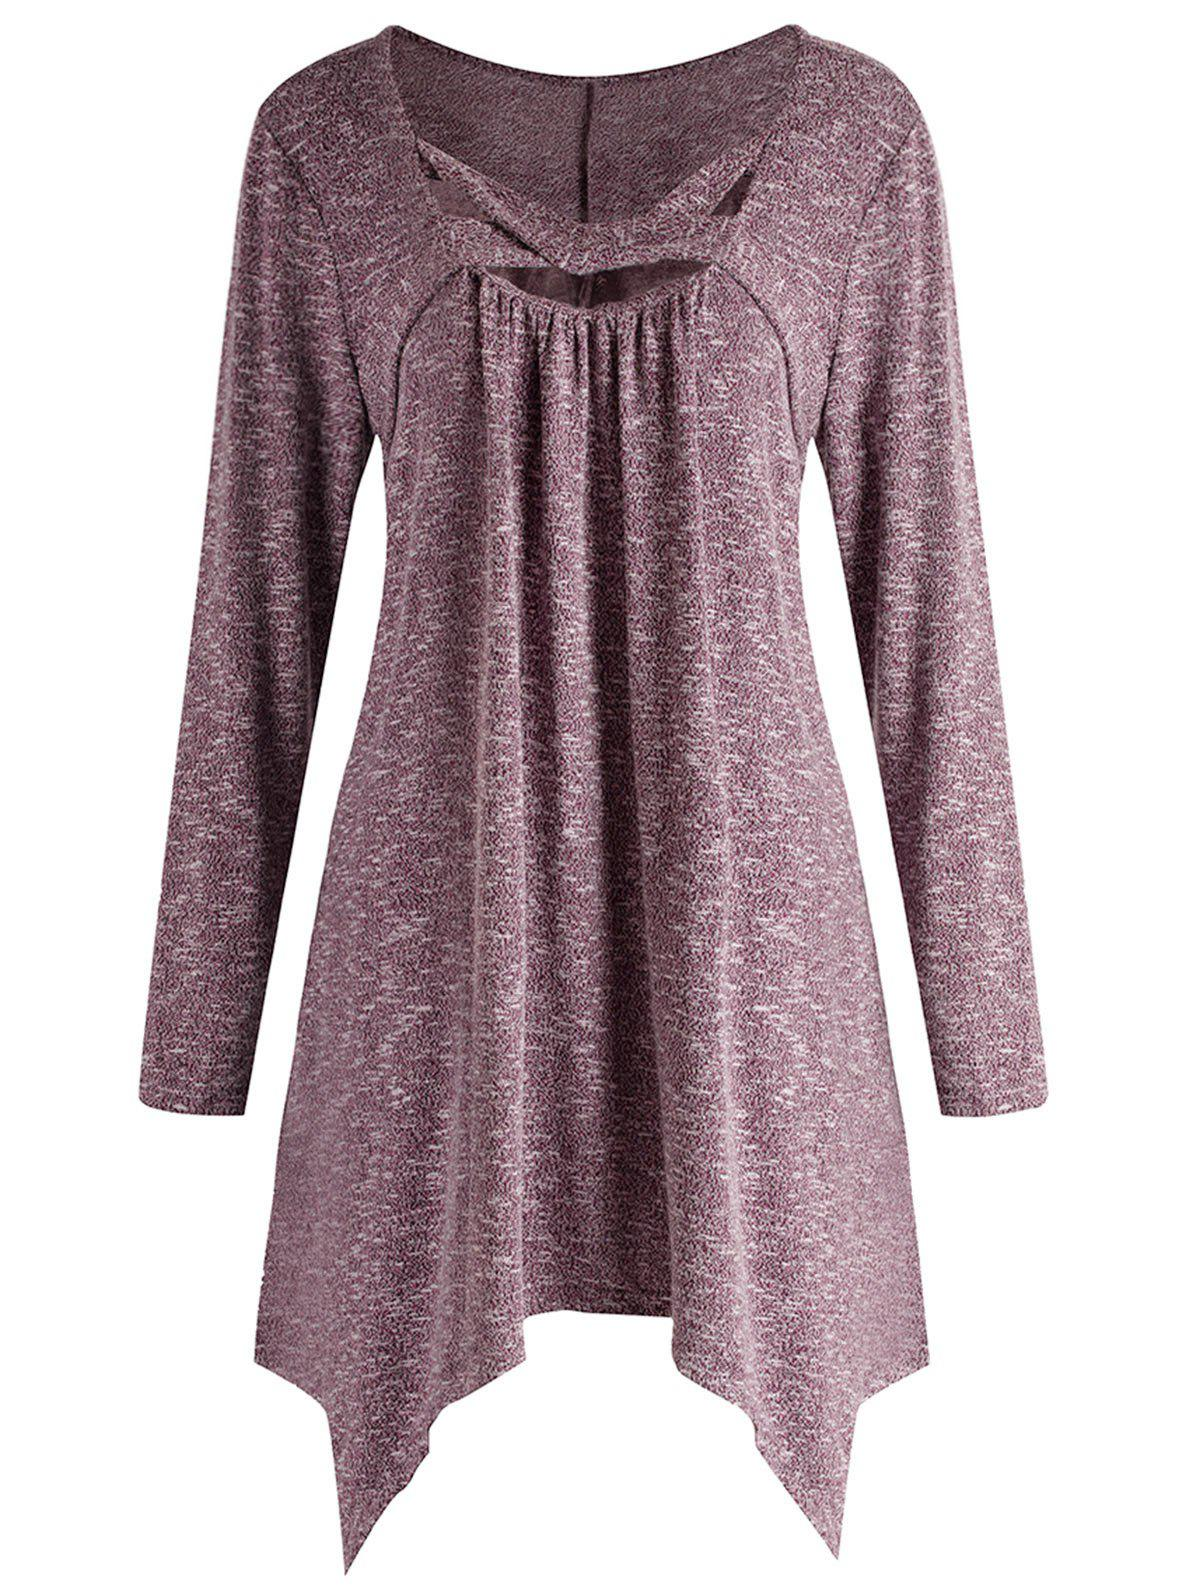 Plus Size U Neck Criss Cross Tee - DULL PURPLE L